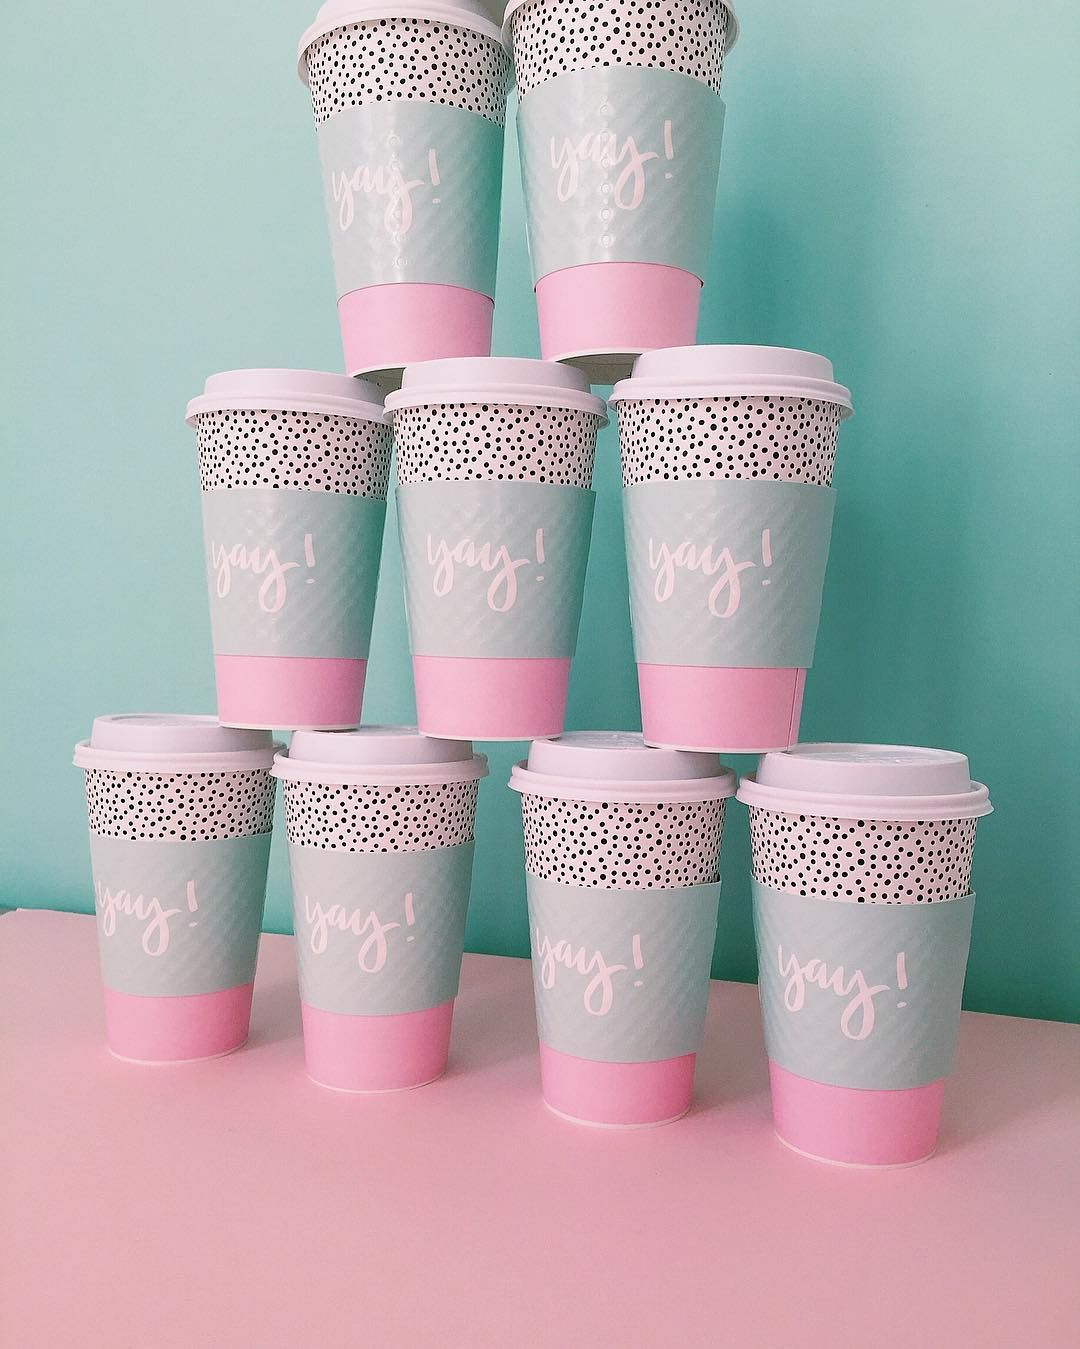 We Designed Disposable Coffee Cups Too